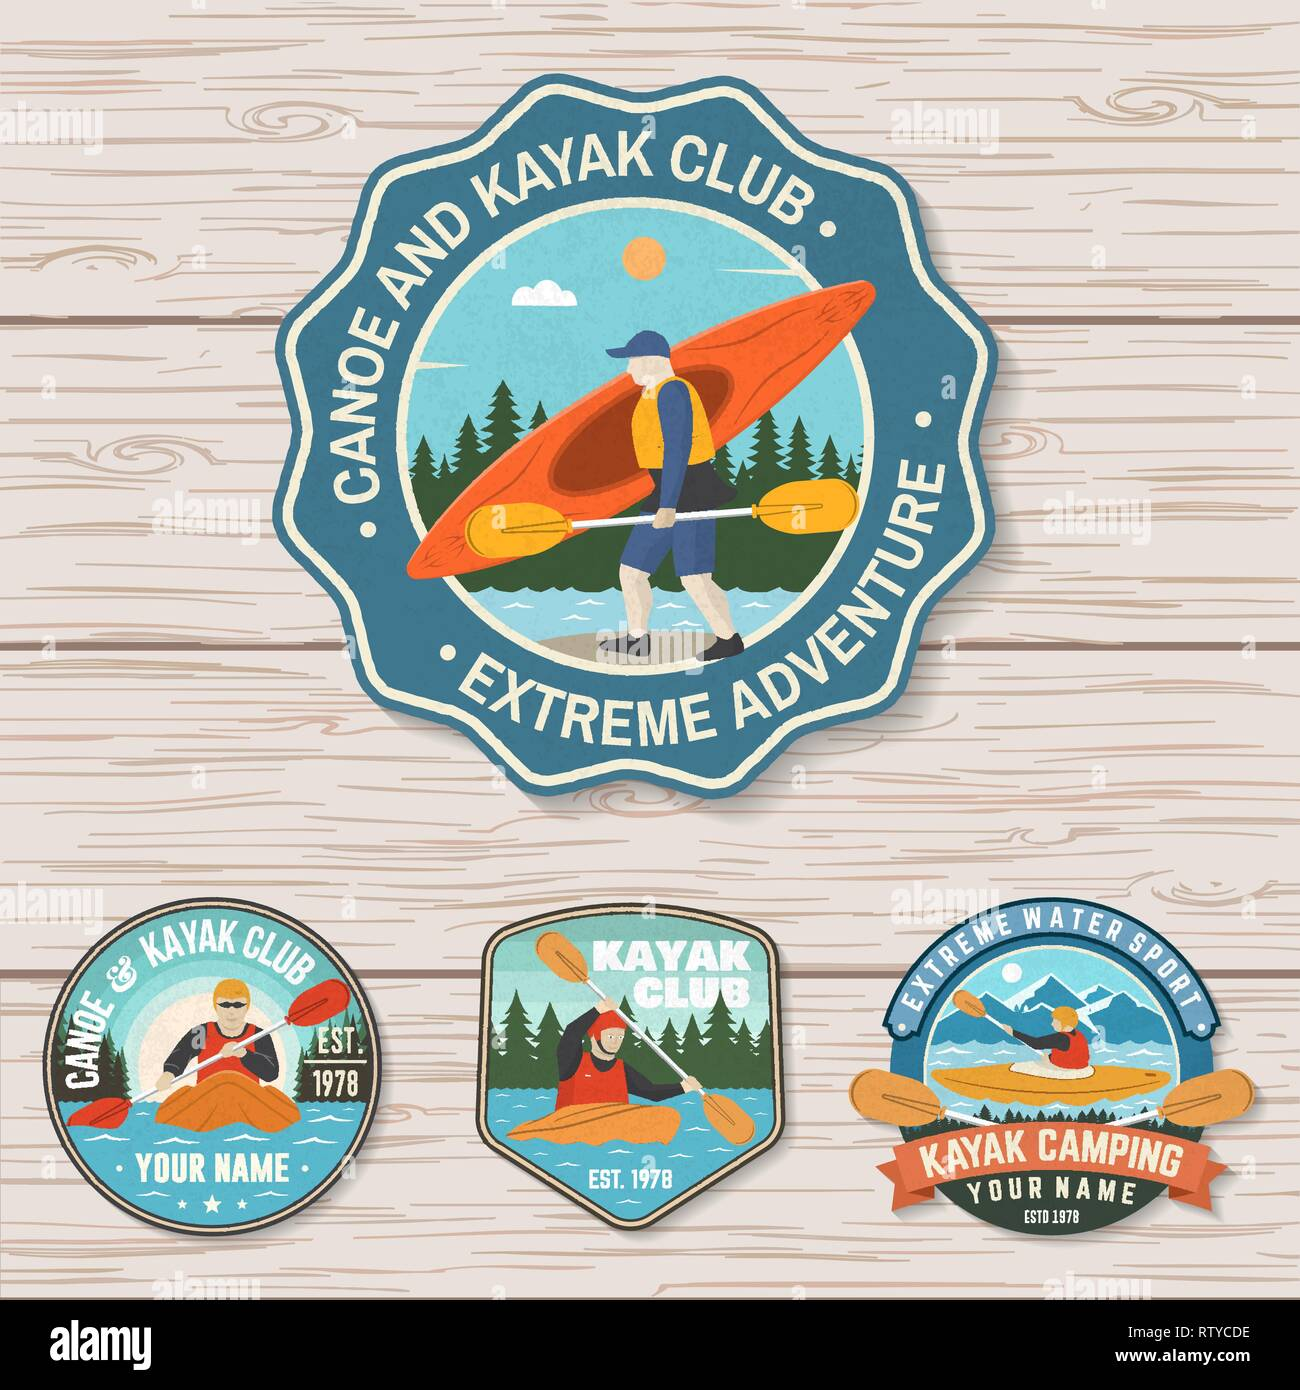 Set of canoe and kayak club badges Vector. Concept for patch, shirt, print, stamp or tee. Vintage design with mountain, river, forest and kayaker silhouette. Extreme water sport kayak patches - Stock Vector